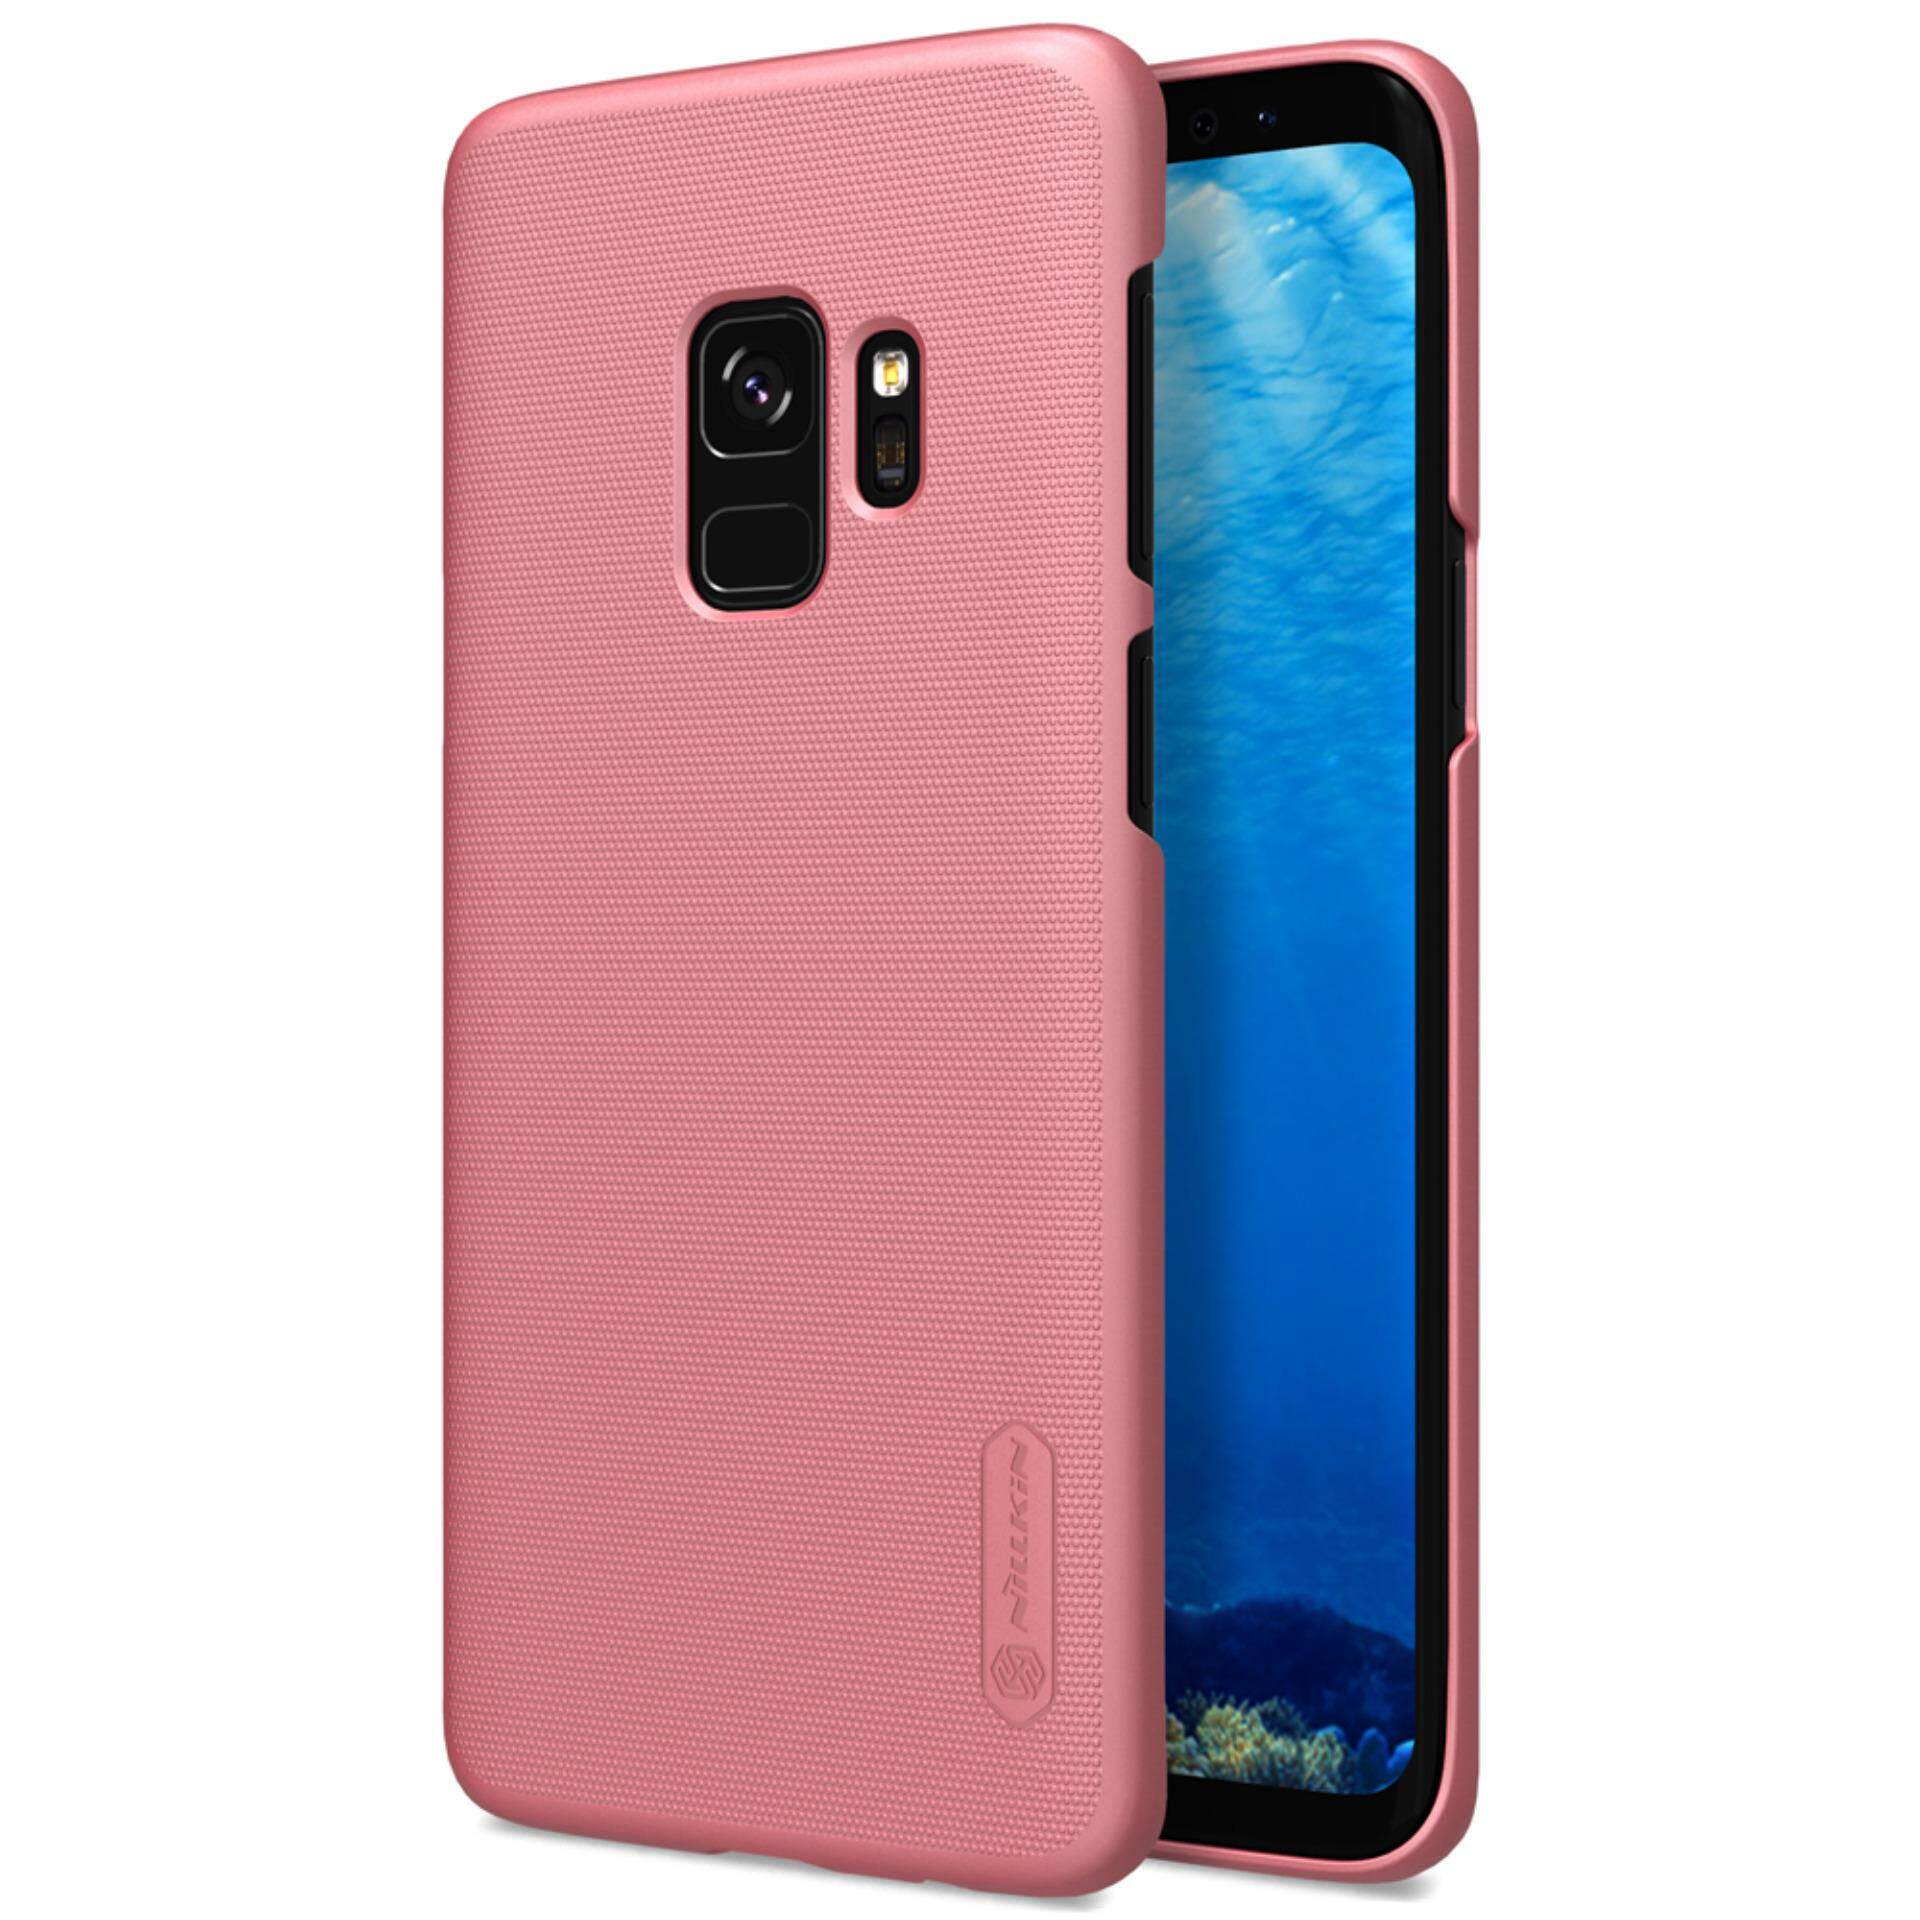 Samsung Galaxy S9 Case, Nillkin Super Frosted Shield with Screen Protector Matte Ultra Thin Protective